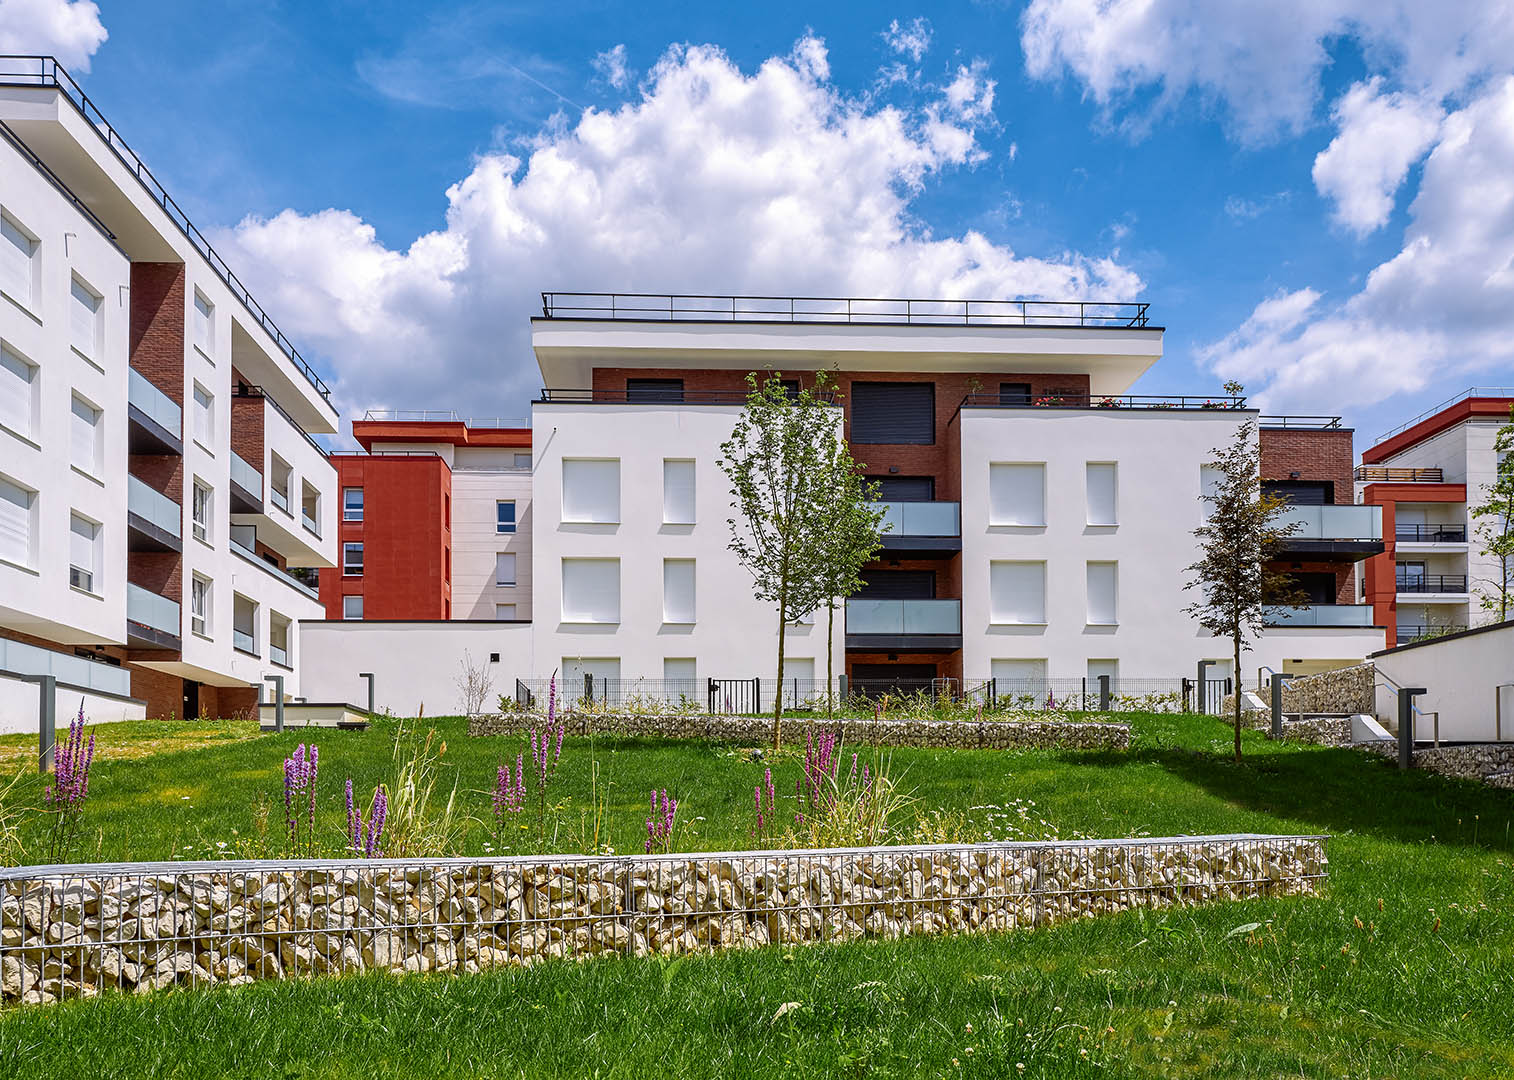 quartier-matisse-grand-quevilly-cba-rouen-4